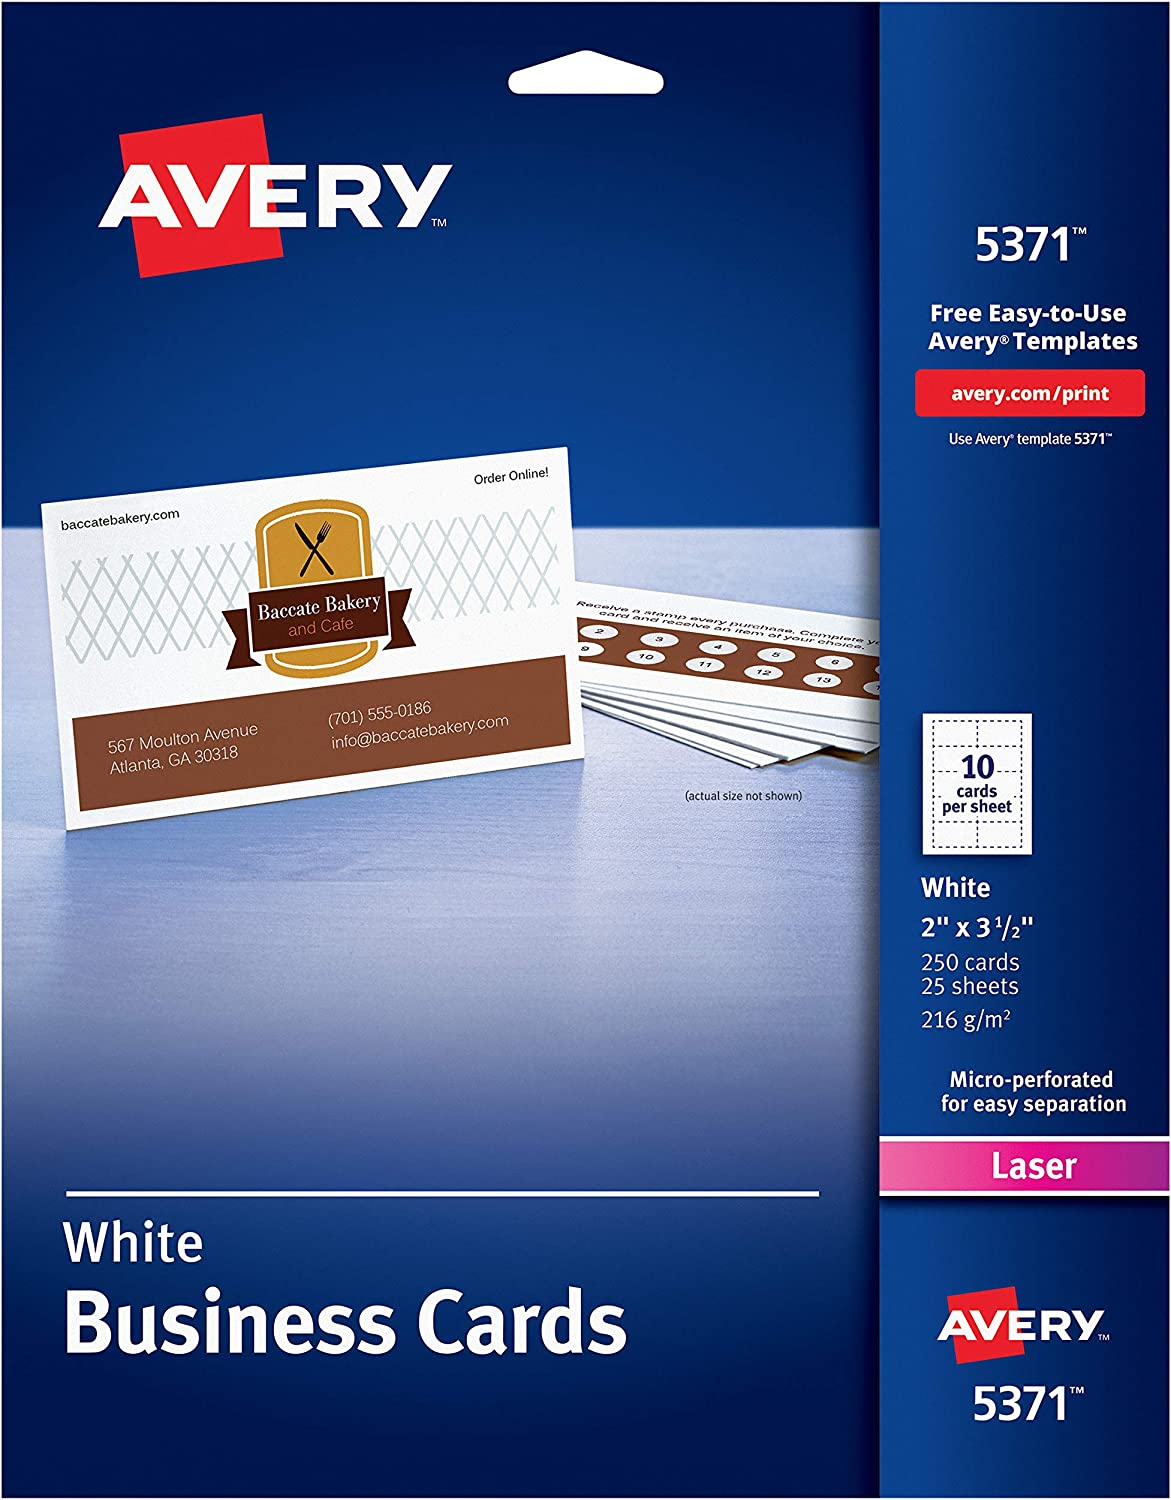 """AVERY 2"""" x 3.5"""" Business Cards, Sure Feed Technology, for Laser Printers, 250 Cards (5371), White (05371) : Business Card Stock : Office Products"""